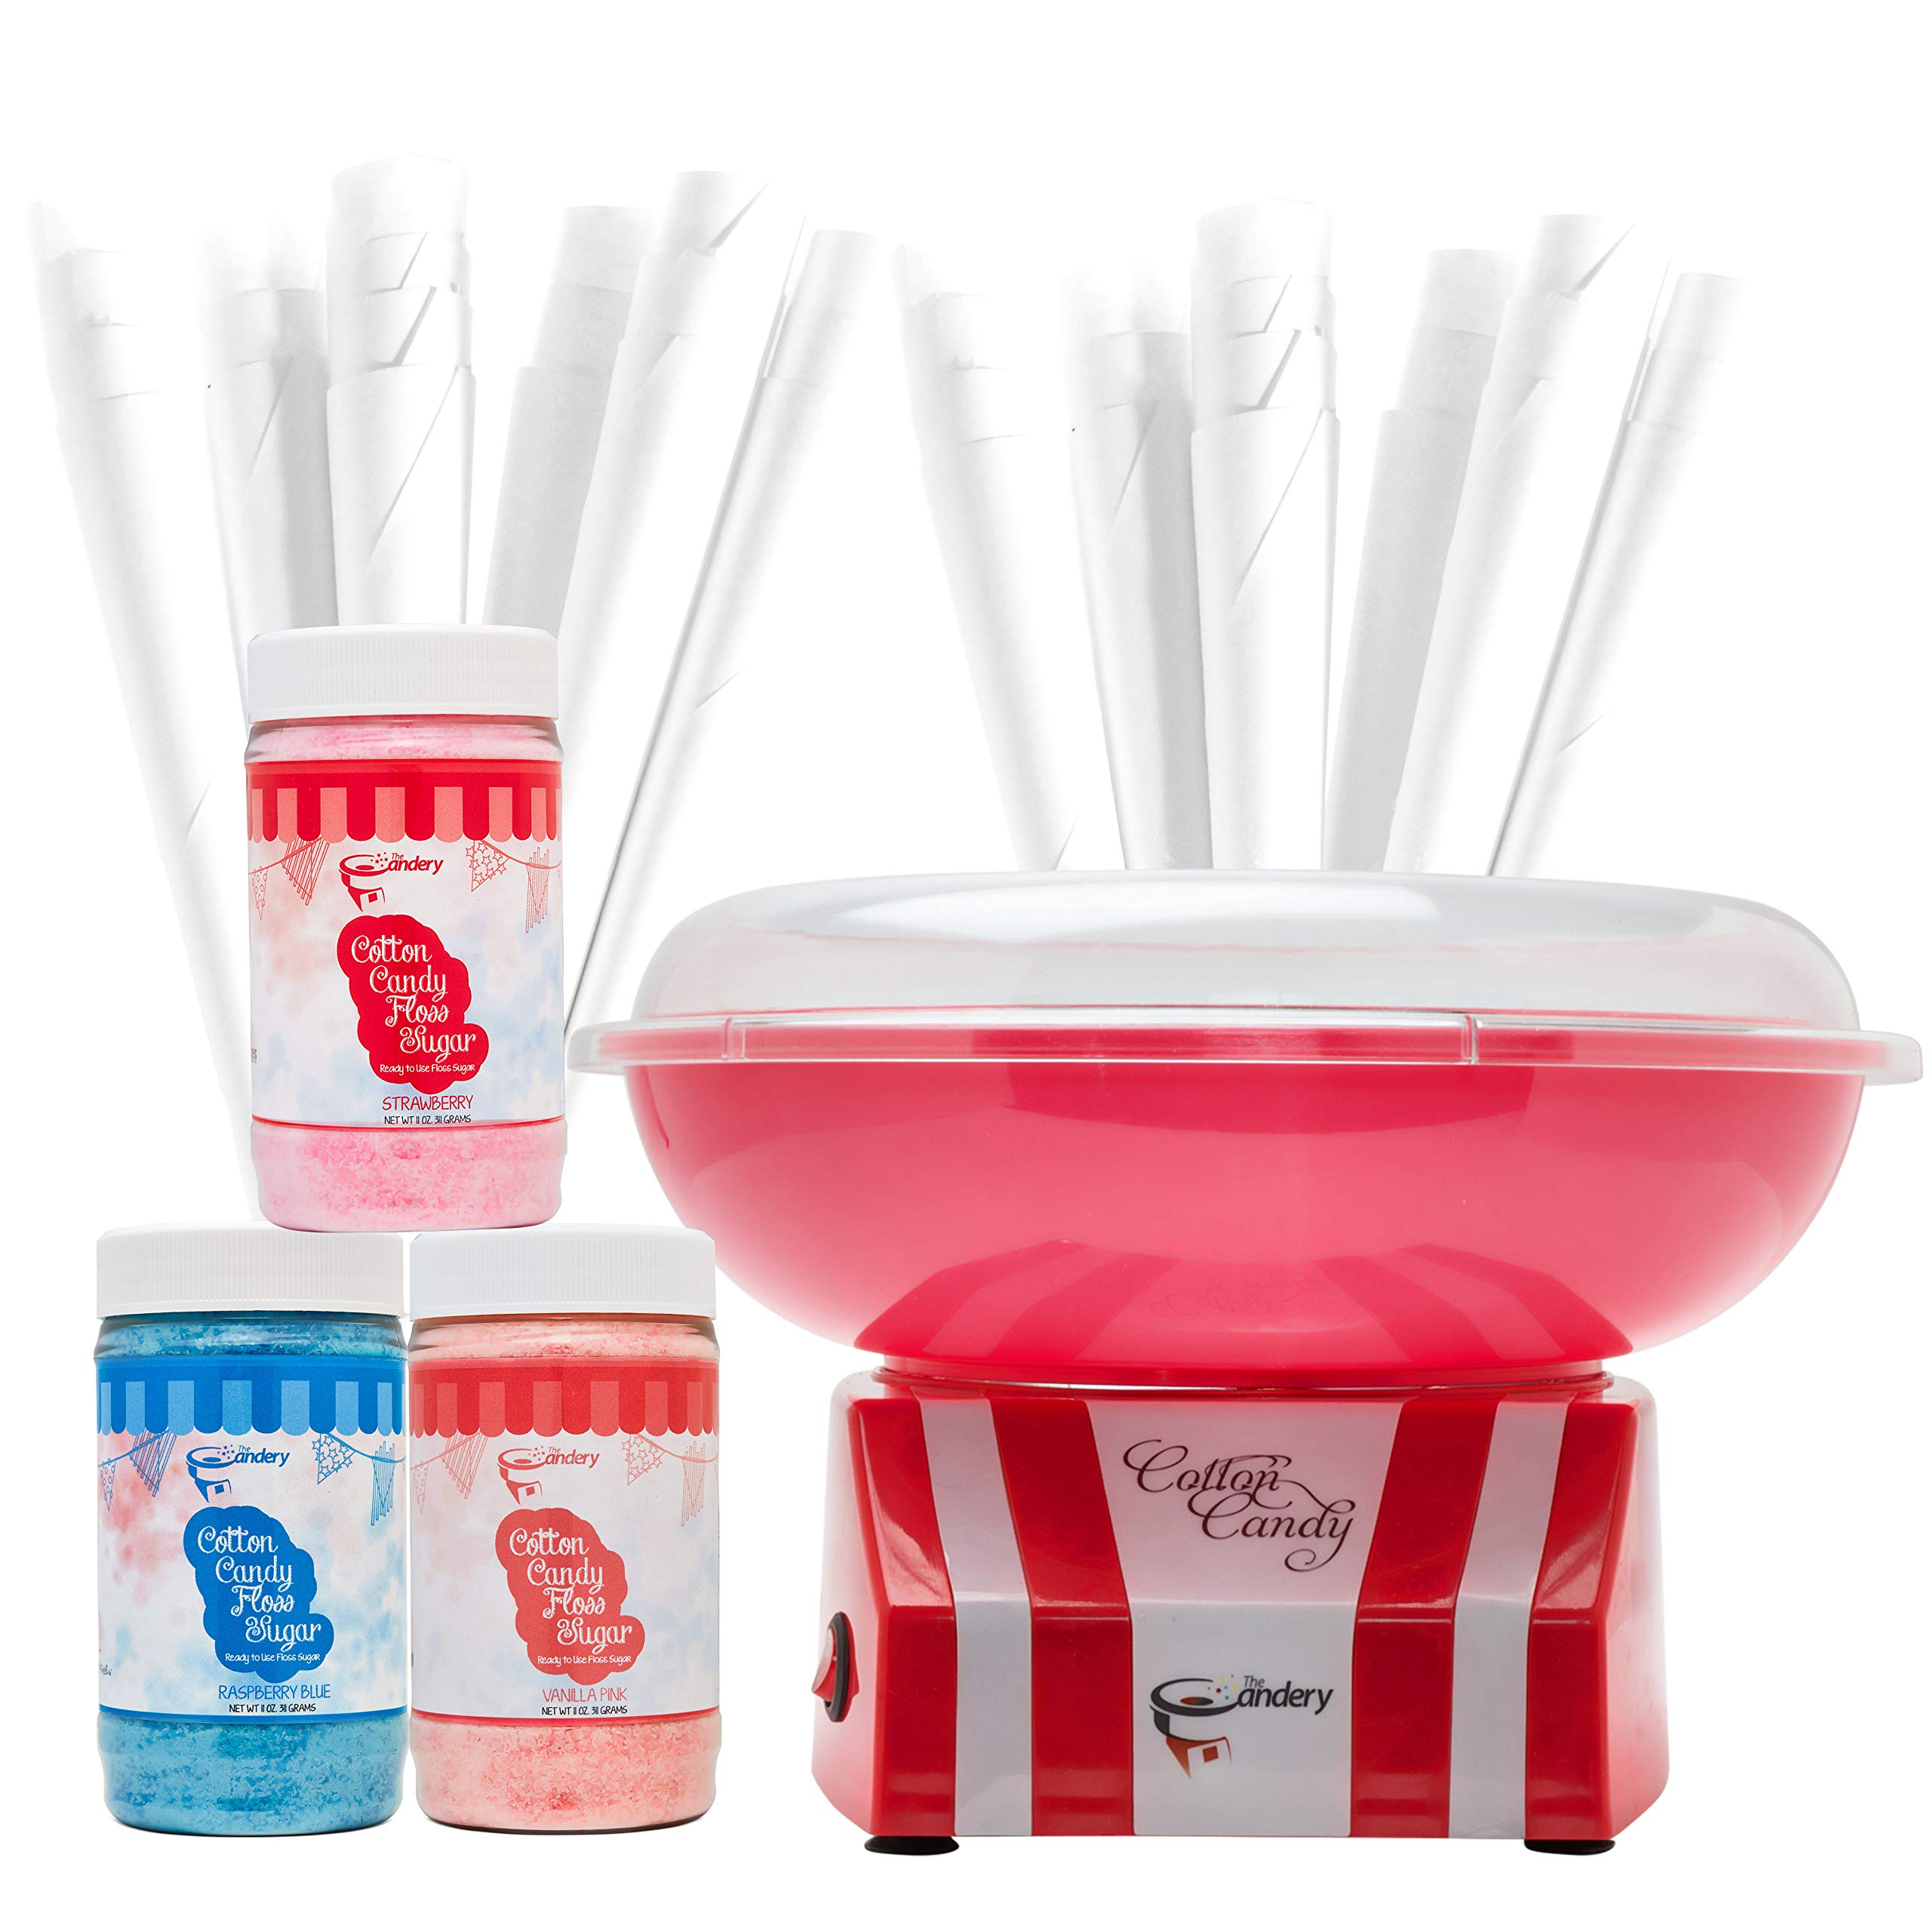 The Candery Cotton Candy Machine and Sugar Kit - Includes 50 Paper Cones & 3 Flavors & Sugar Scoop - Raspberry Blue, Strawberry, Vanilla - Kid-Friendly and Easy-to-Assemble by The Candery (Image #8)